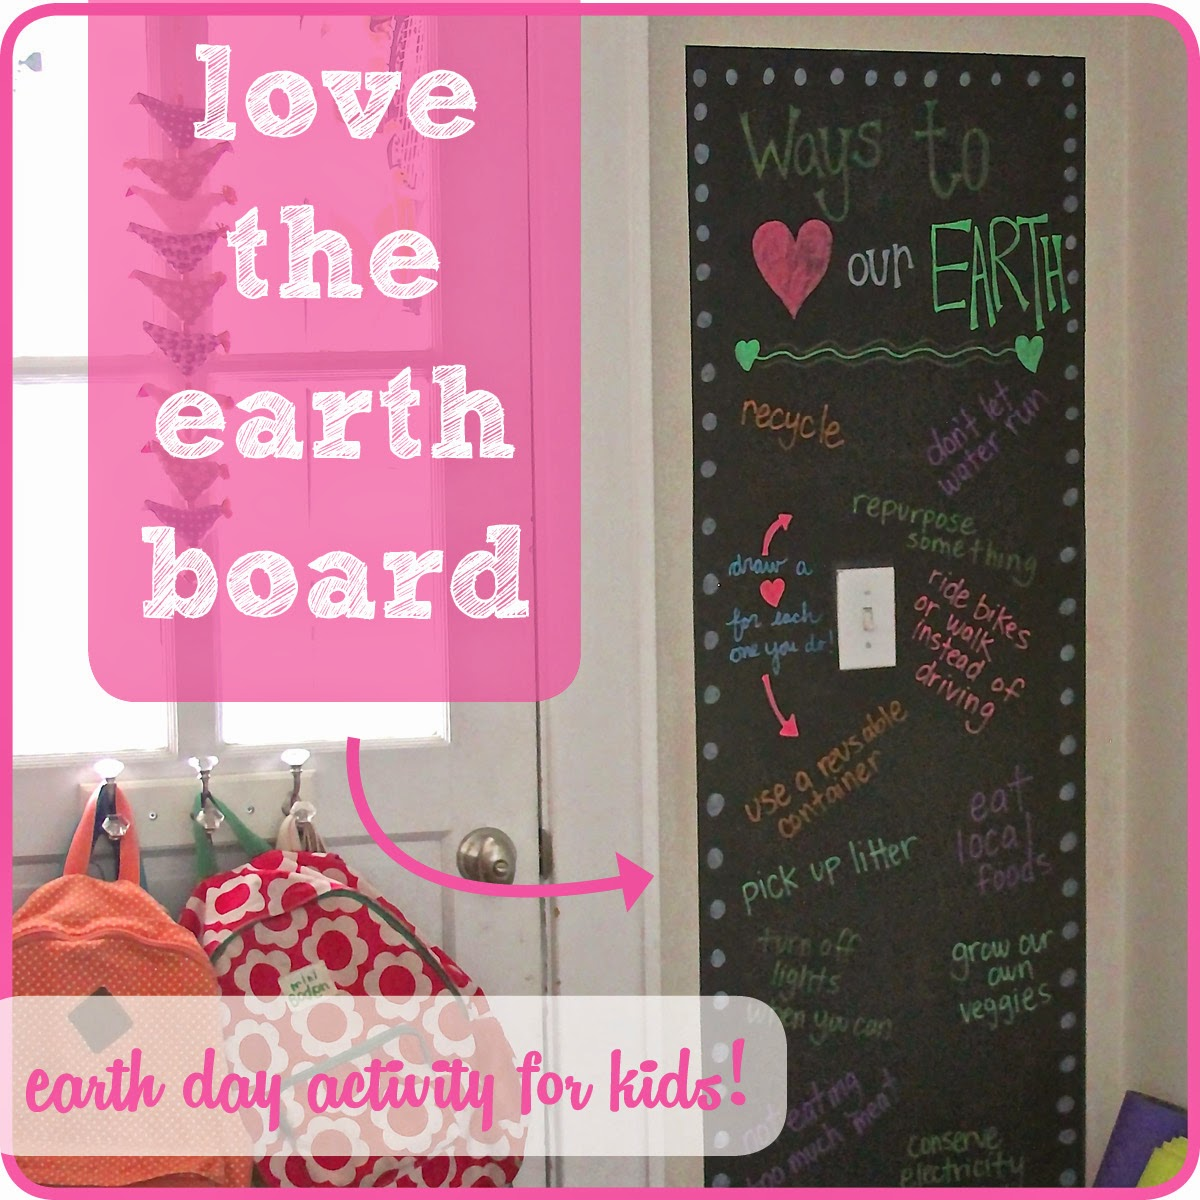 Love the Earth Board